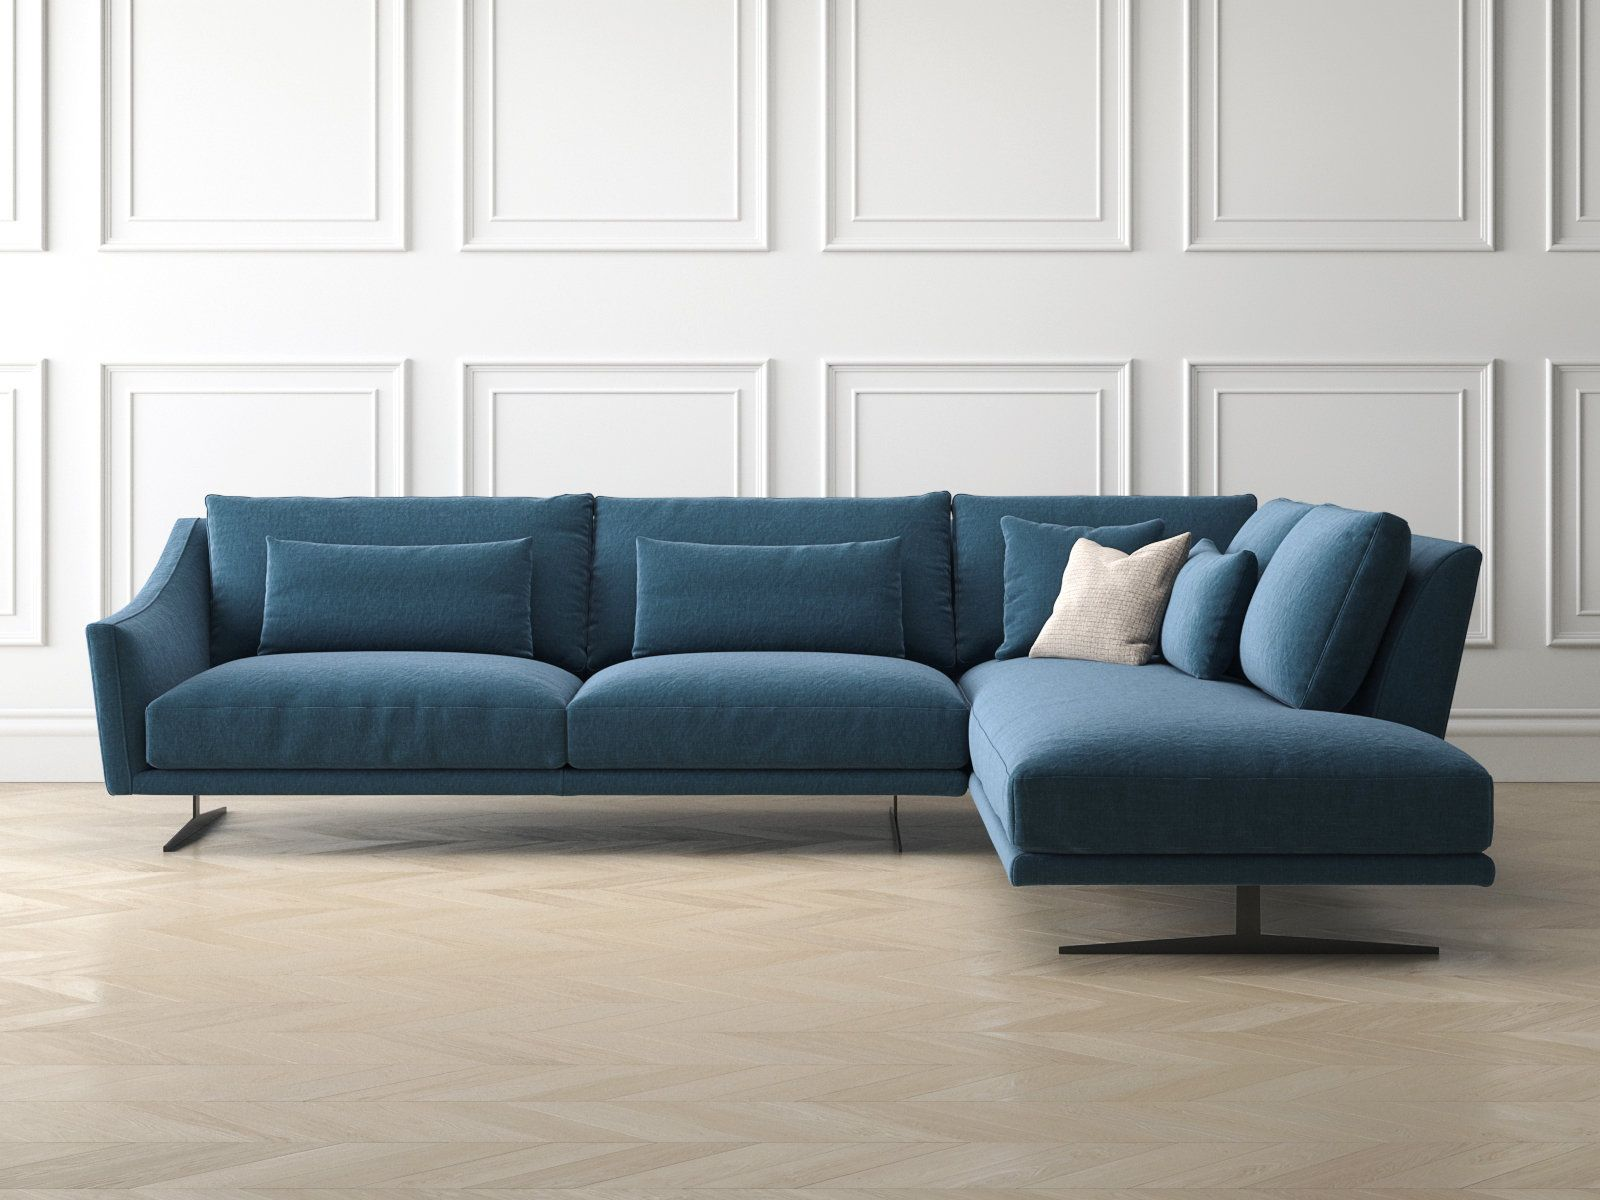 Skid Corner Comp 3d Model By Design Connected Sofa Inspiration